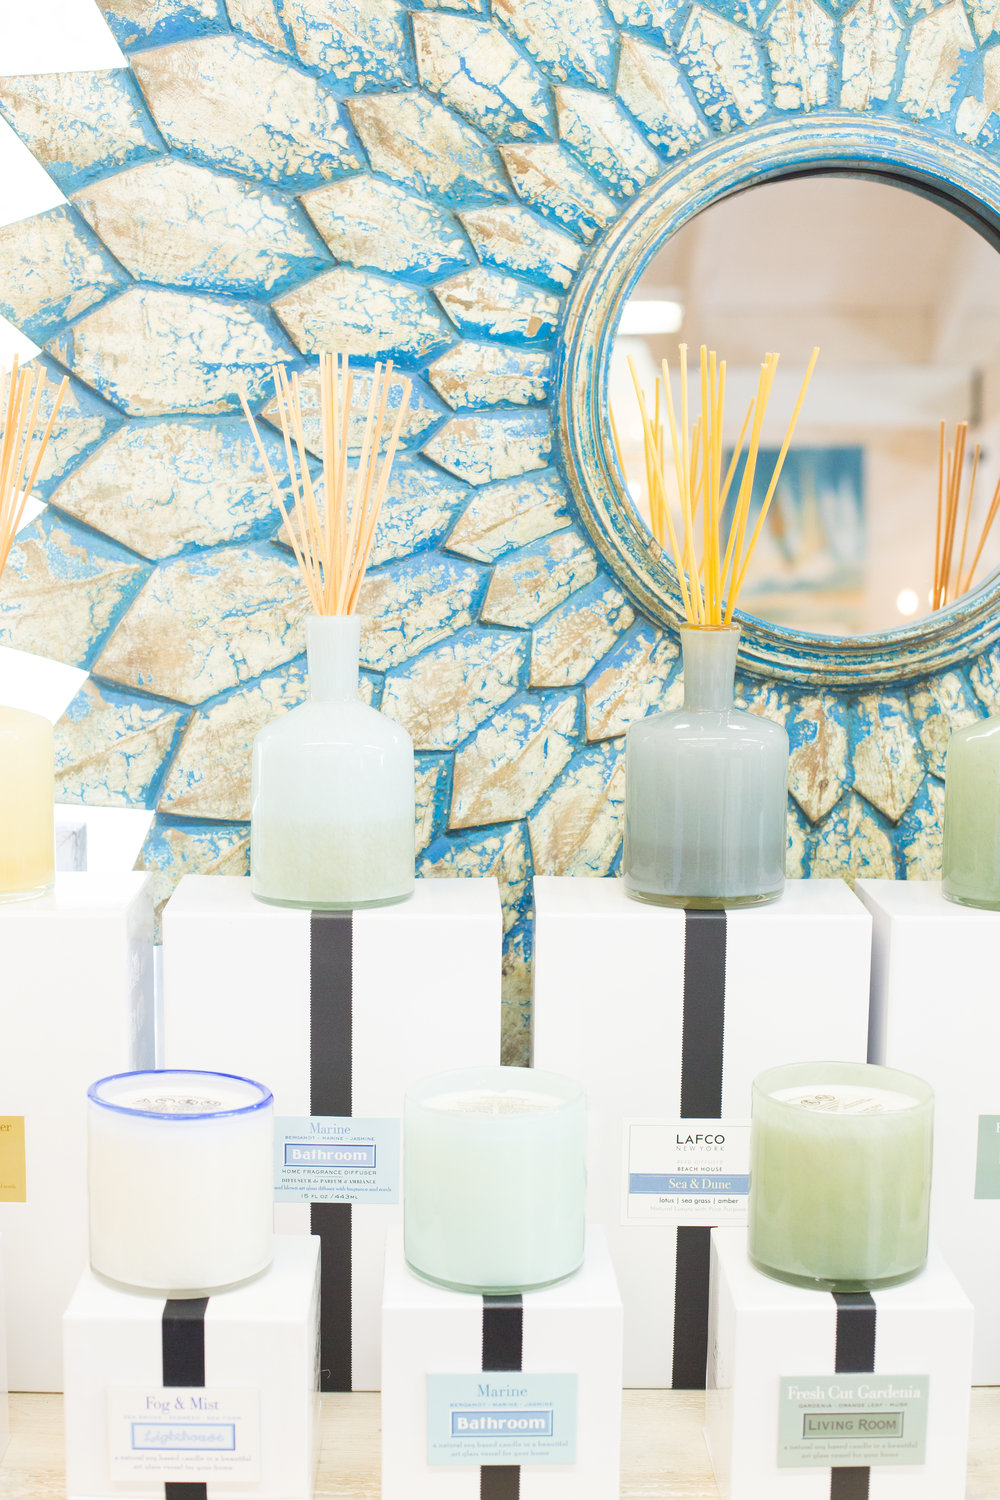 Sunburst mirror, turquoise candles